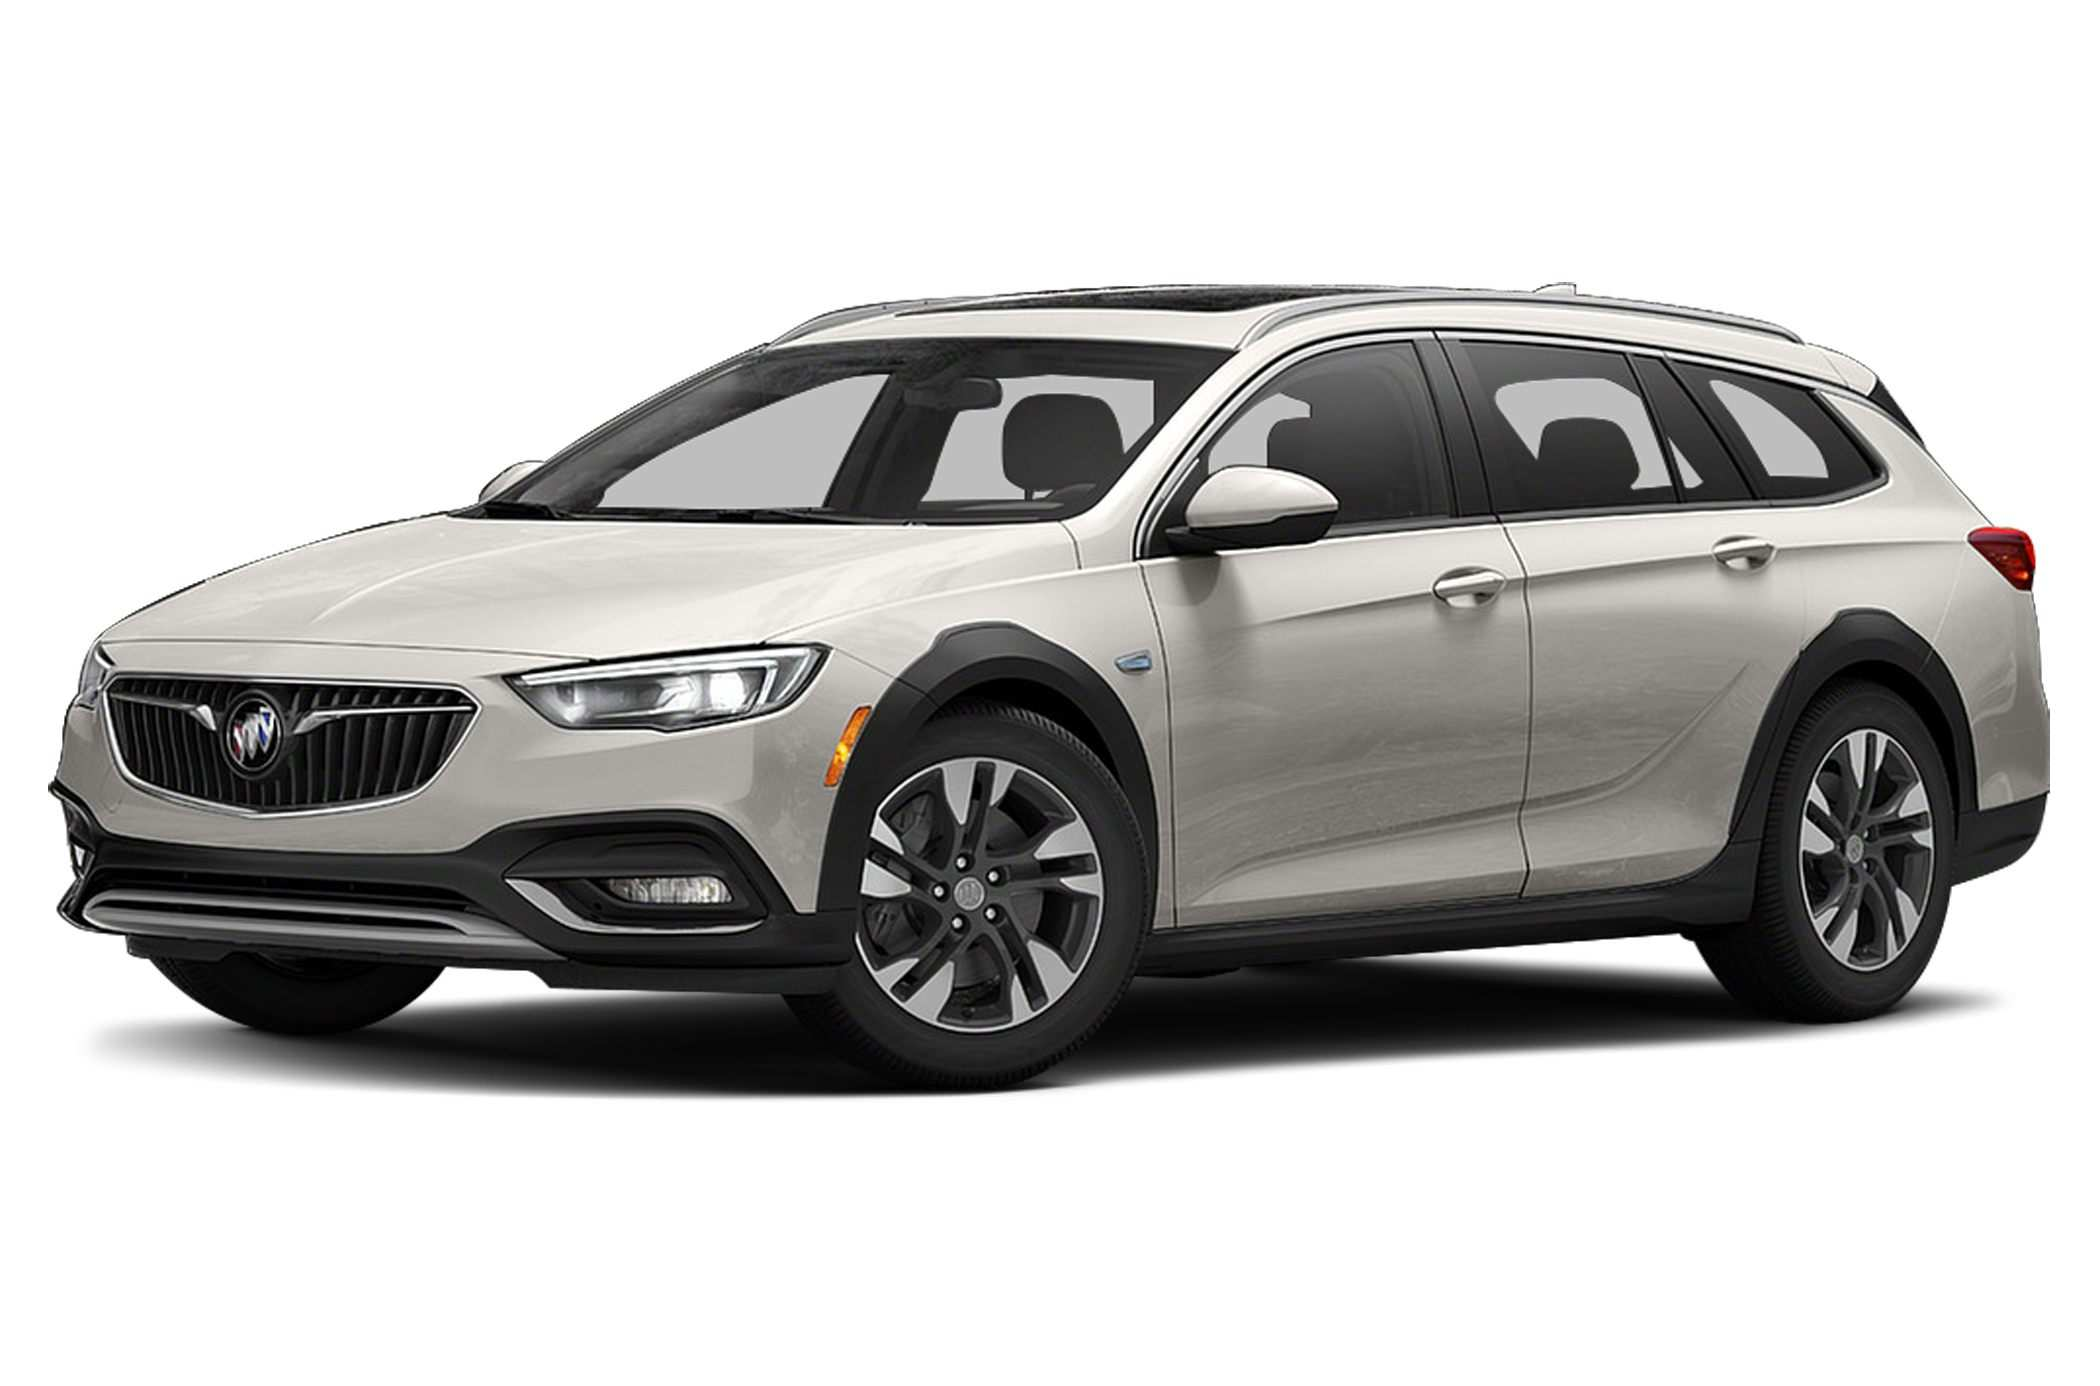 98 The Best 2020 Buick Estate Wagon Pictures